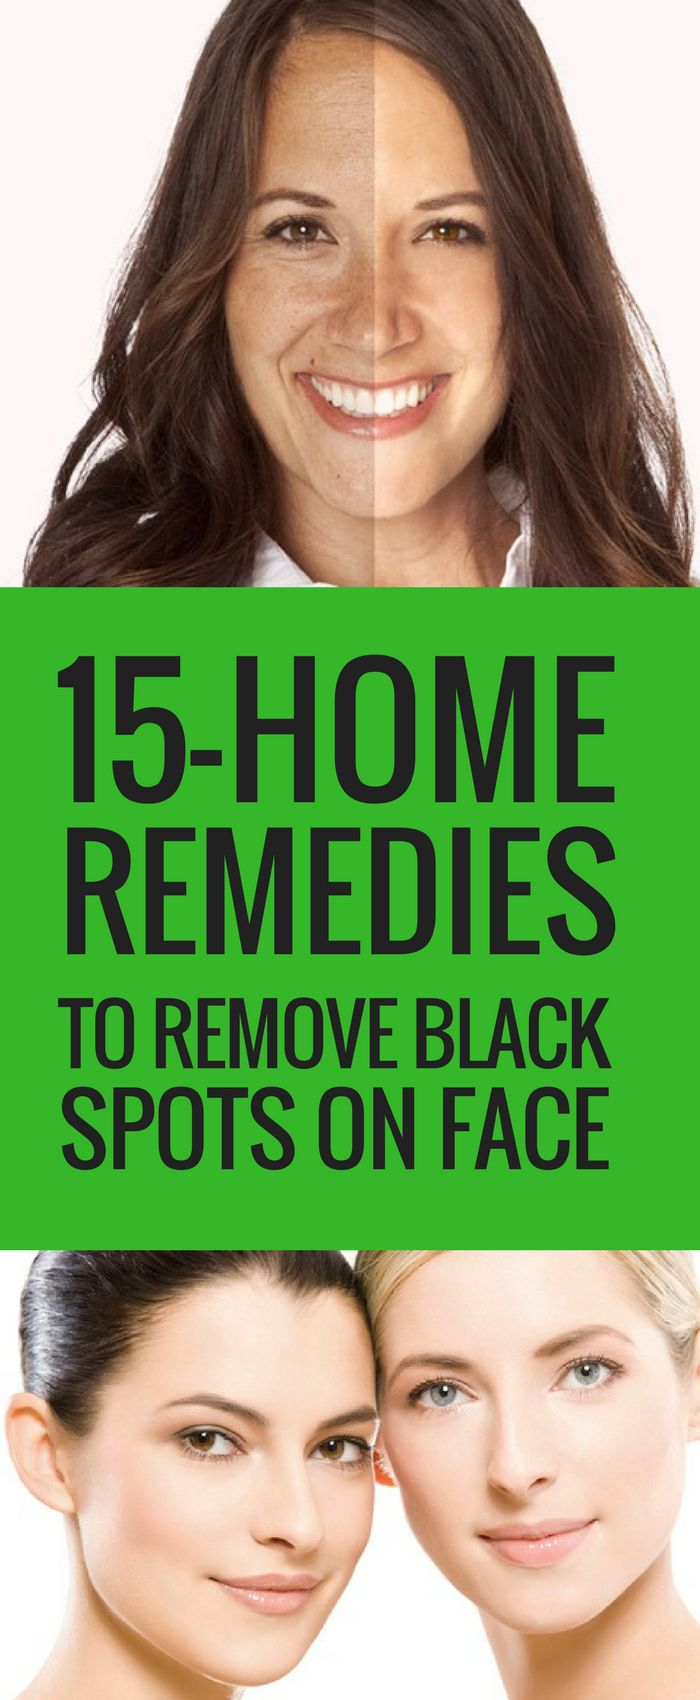 How to remove black spots on face quickly is a million dollar recurring question asked by many. Here is a full overview of how to get rid of the dark spots.